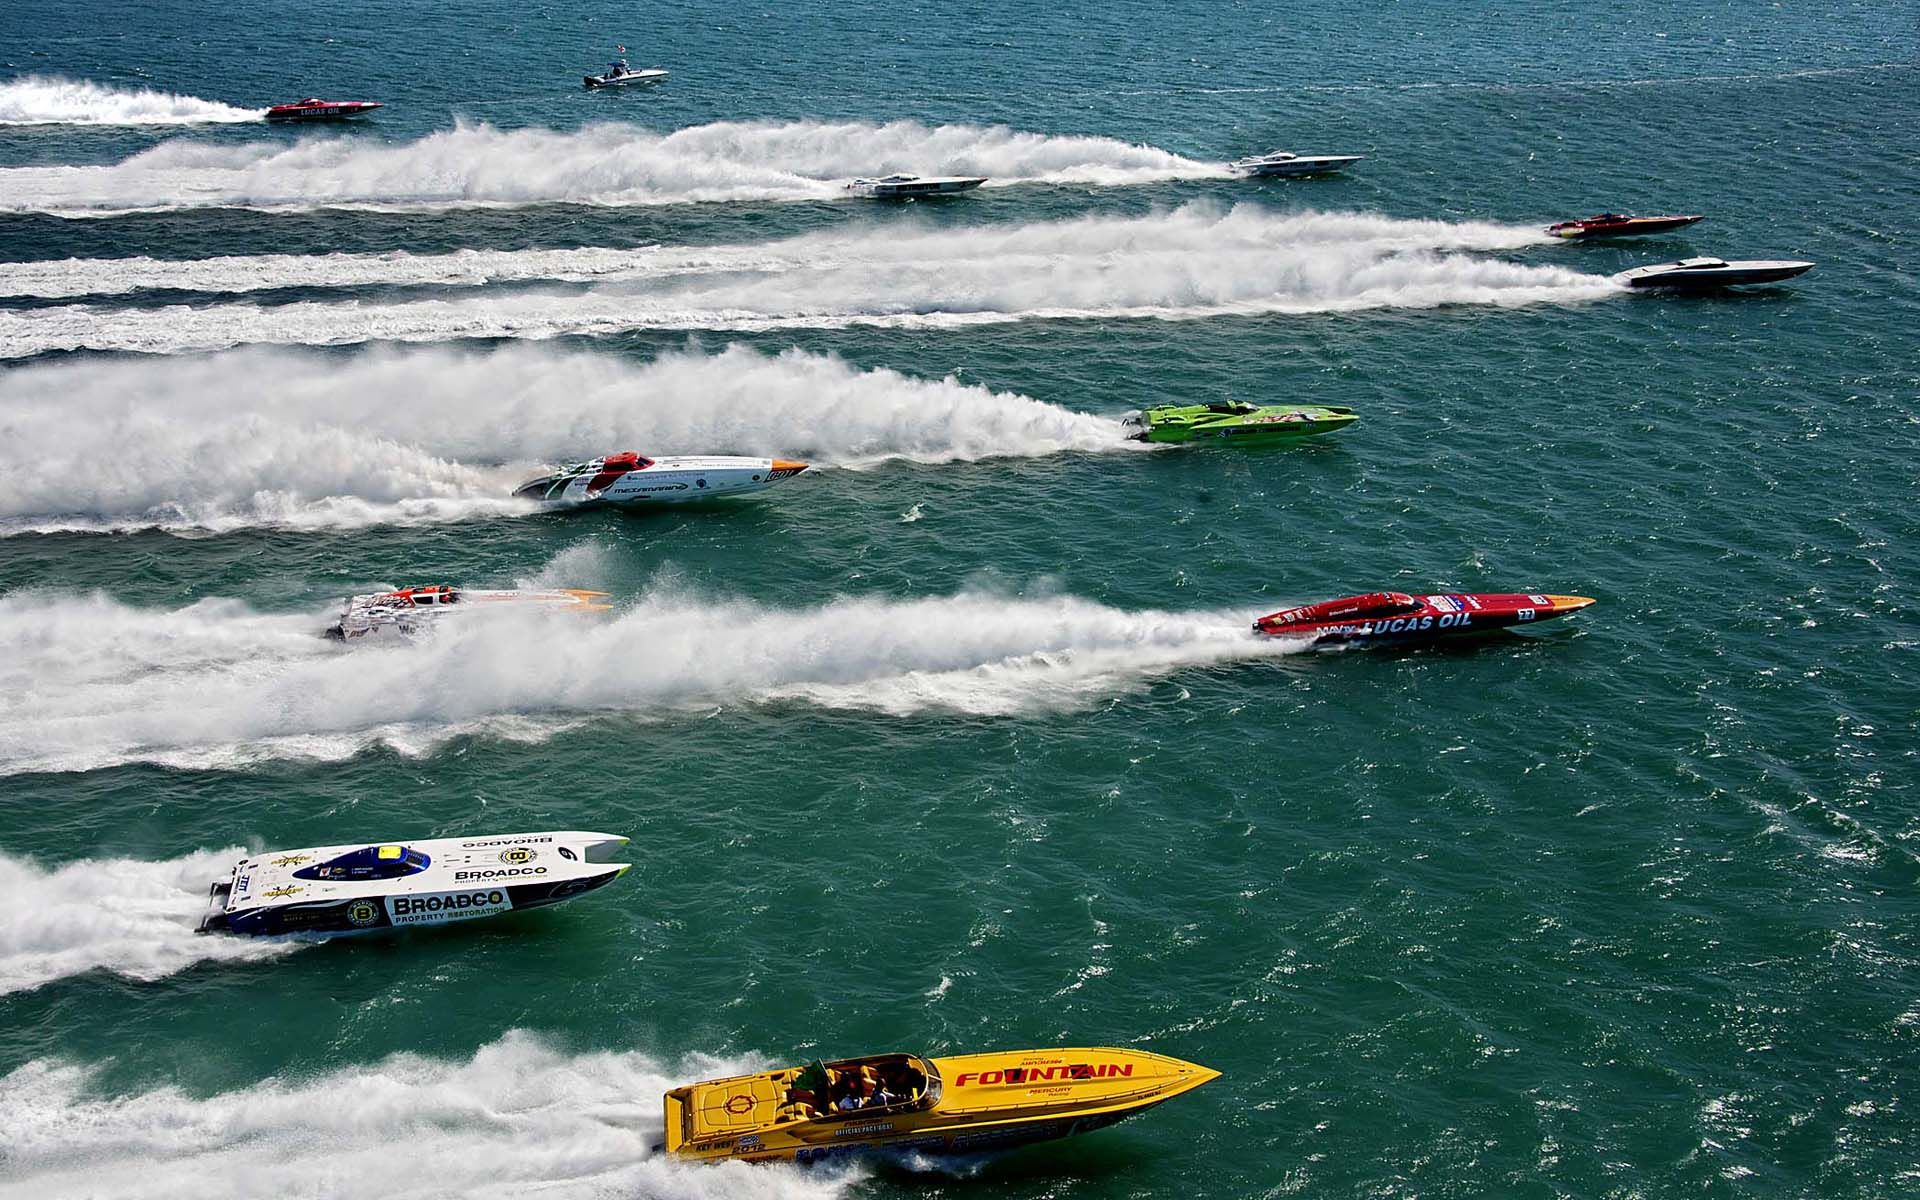 Boat boats race racing wallpaper | 1920x1200 | 128359 | WallpaperUP